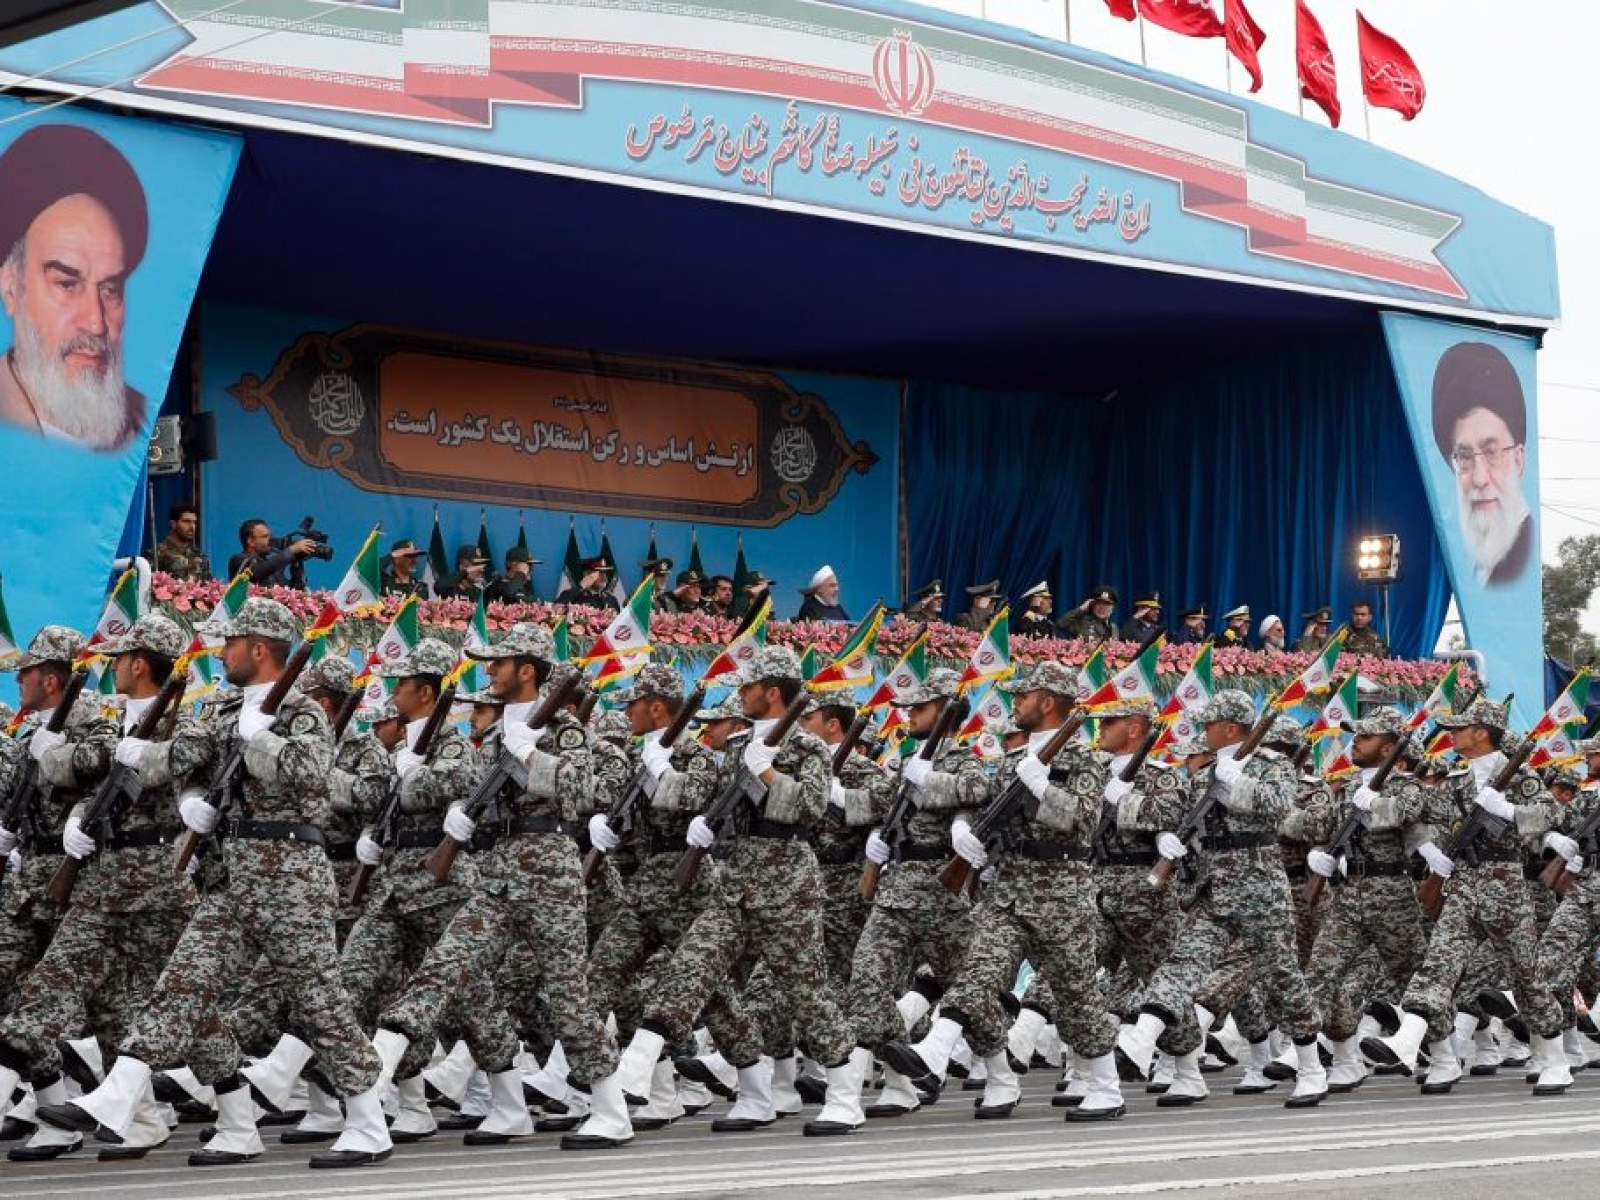 U S  Navy Would 'Push, Shove, Stomp and Destroy' Iran 'In a